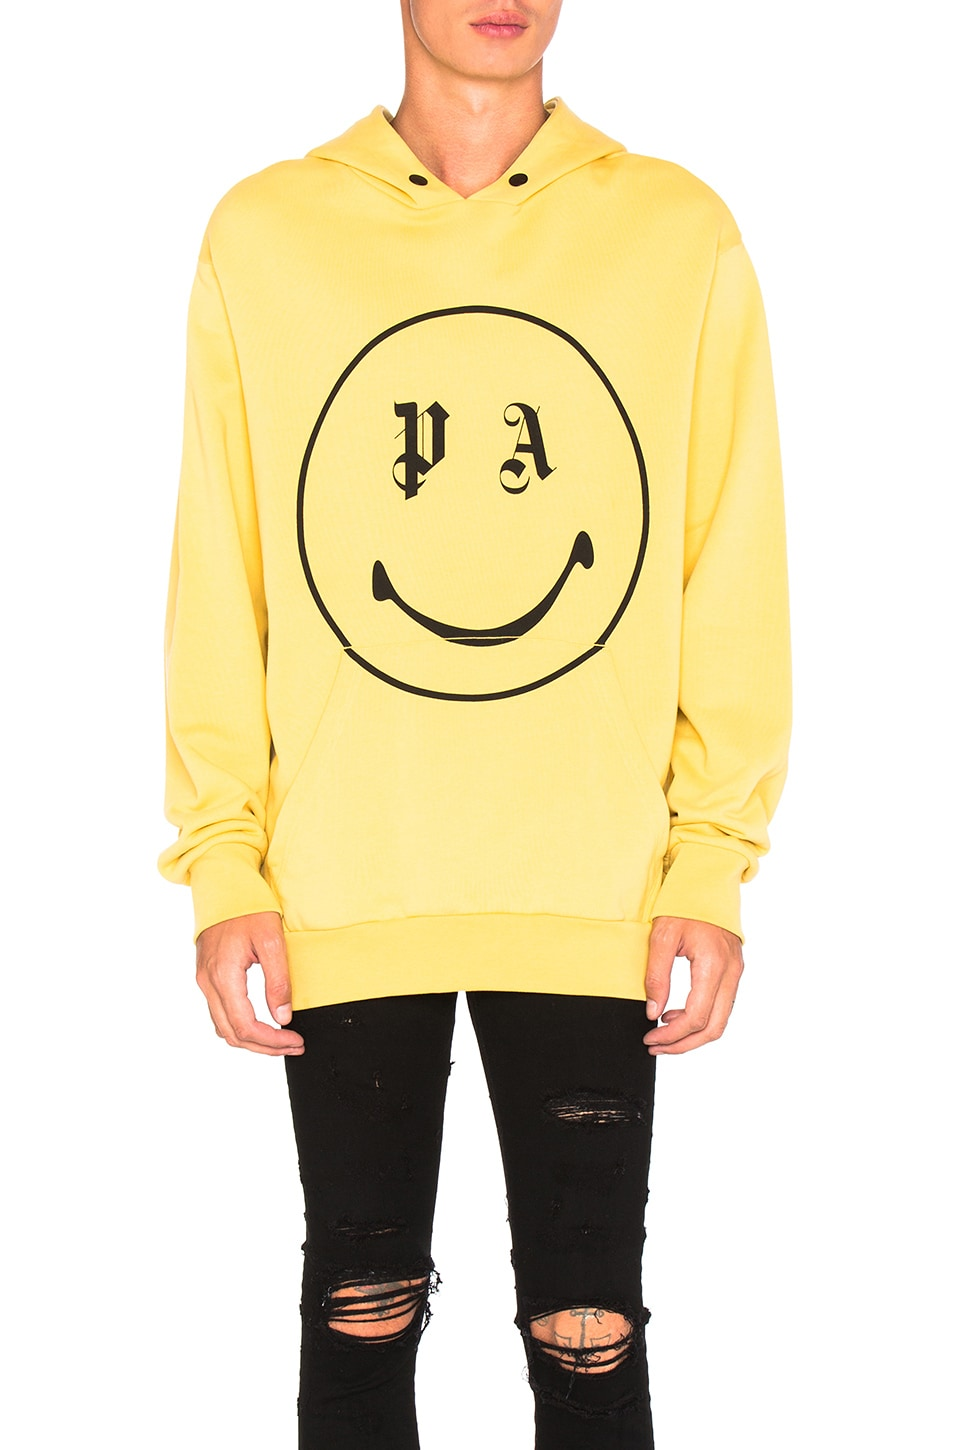 PA Smiling Hoody by Palm Angels